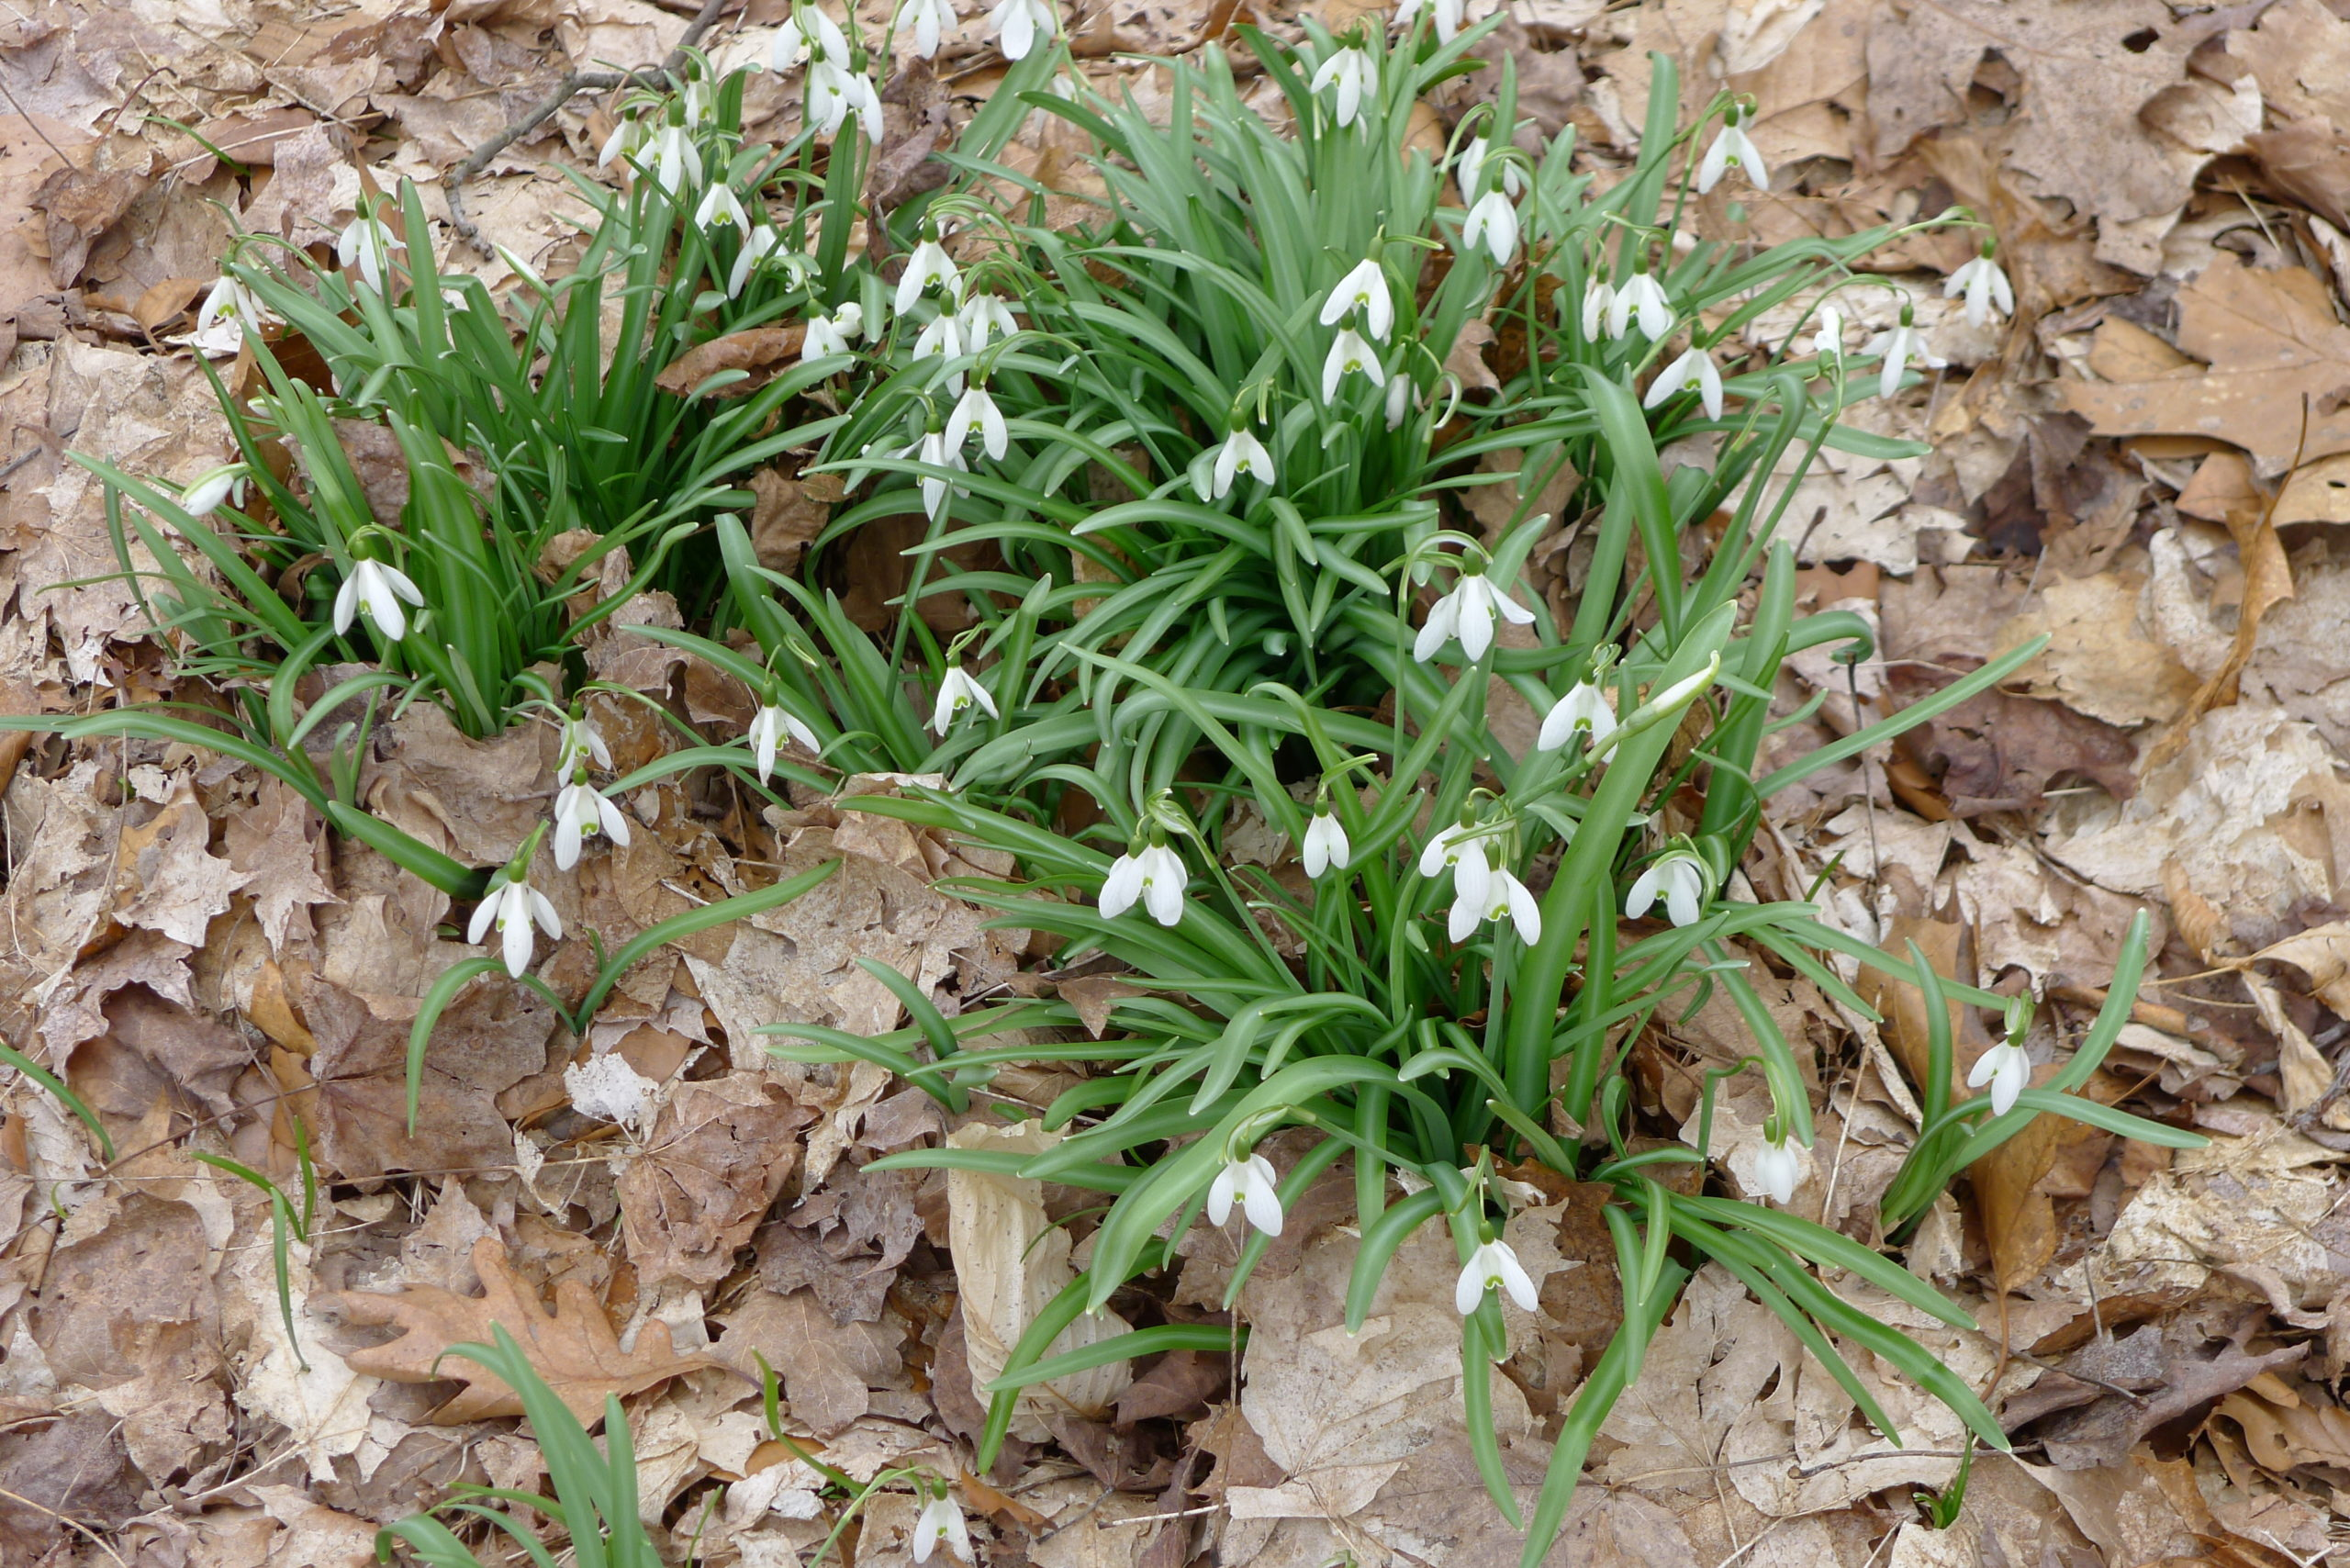 In late March into early April (or sooner on the southern side of a house) snowdrops (Galanthus) emerge. True harbingers of spring, they're usually the first bulbs to flower and often push up through the snow. If happy, they will naturalize.